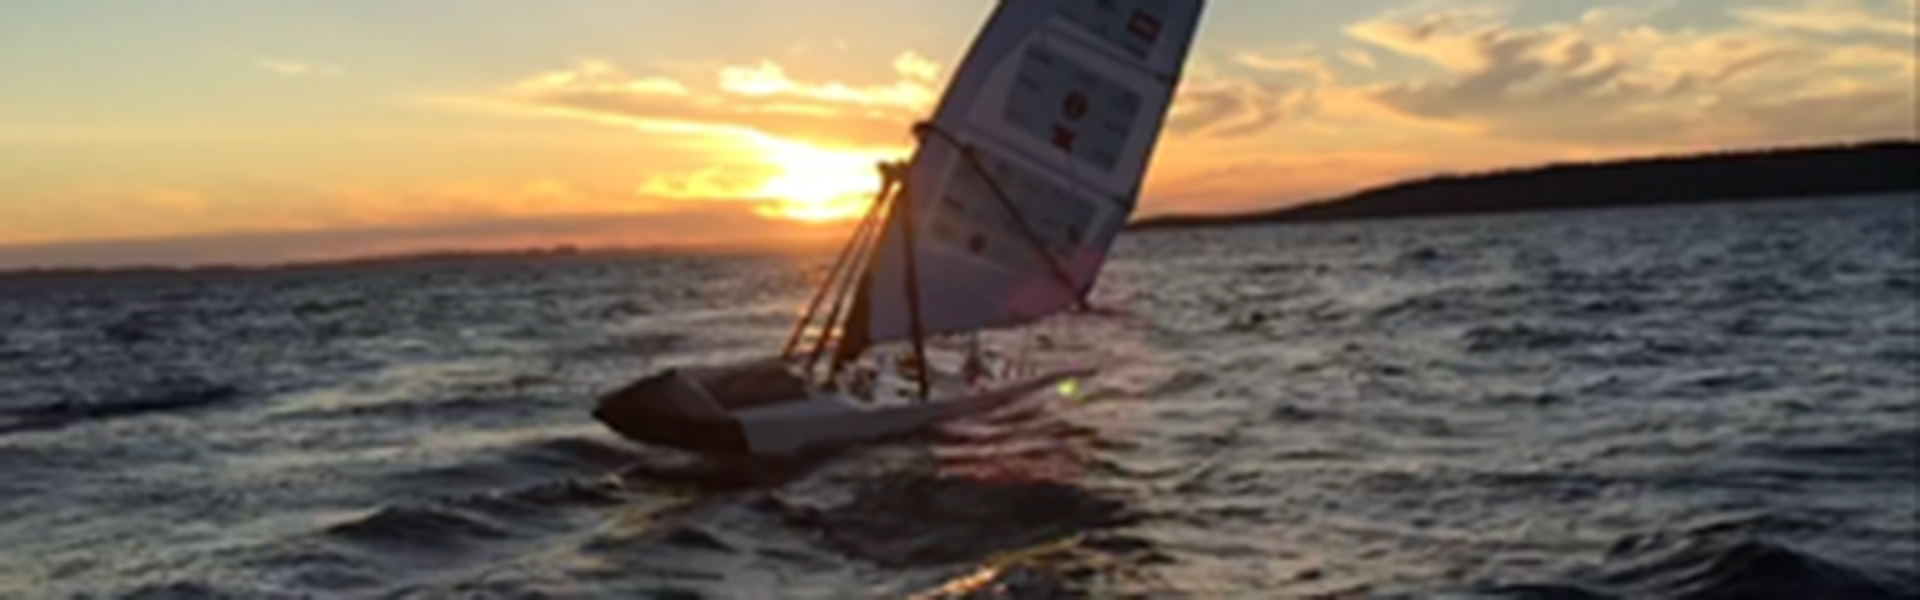 Hemisphere Supporting Innovation: The Adventures of the UBC Robotic Sailboat Team